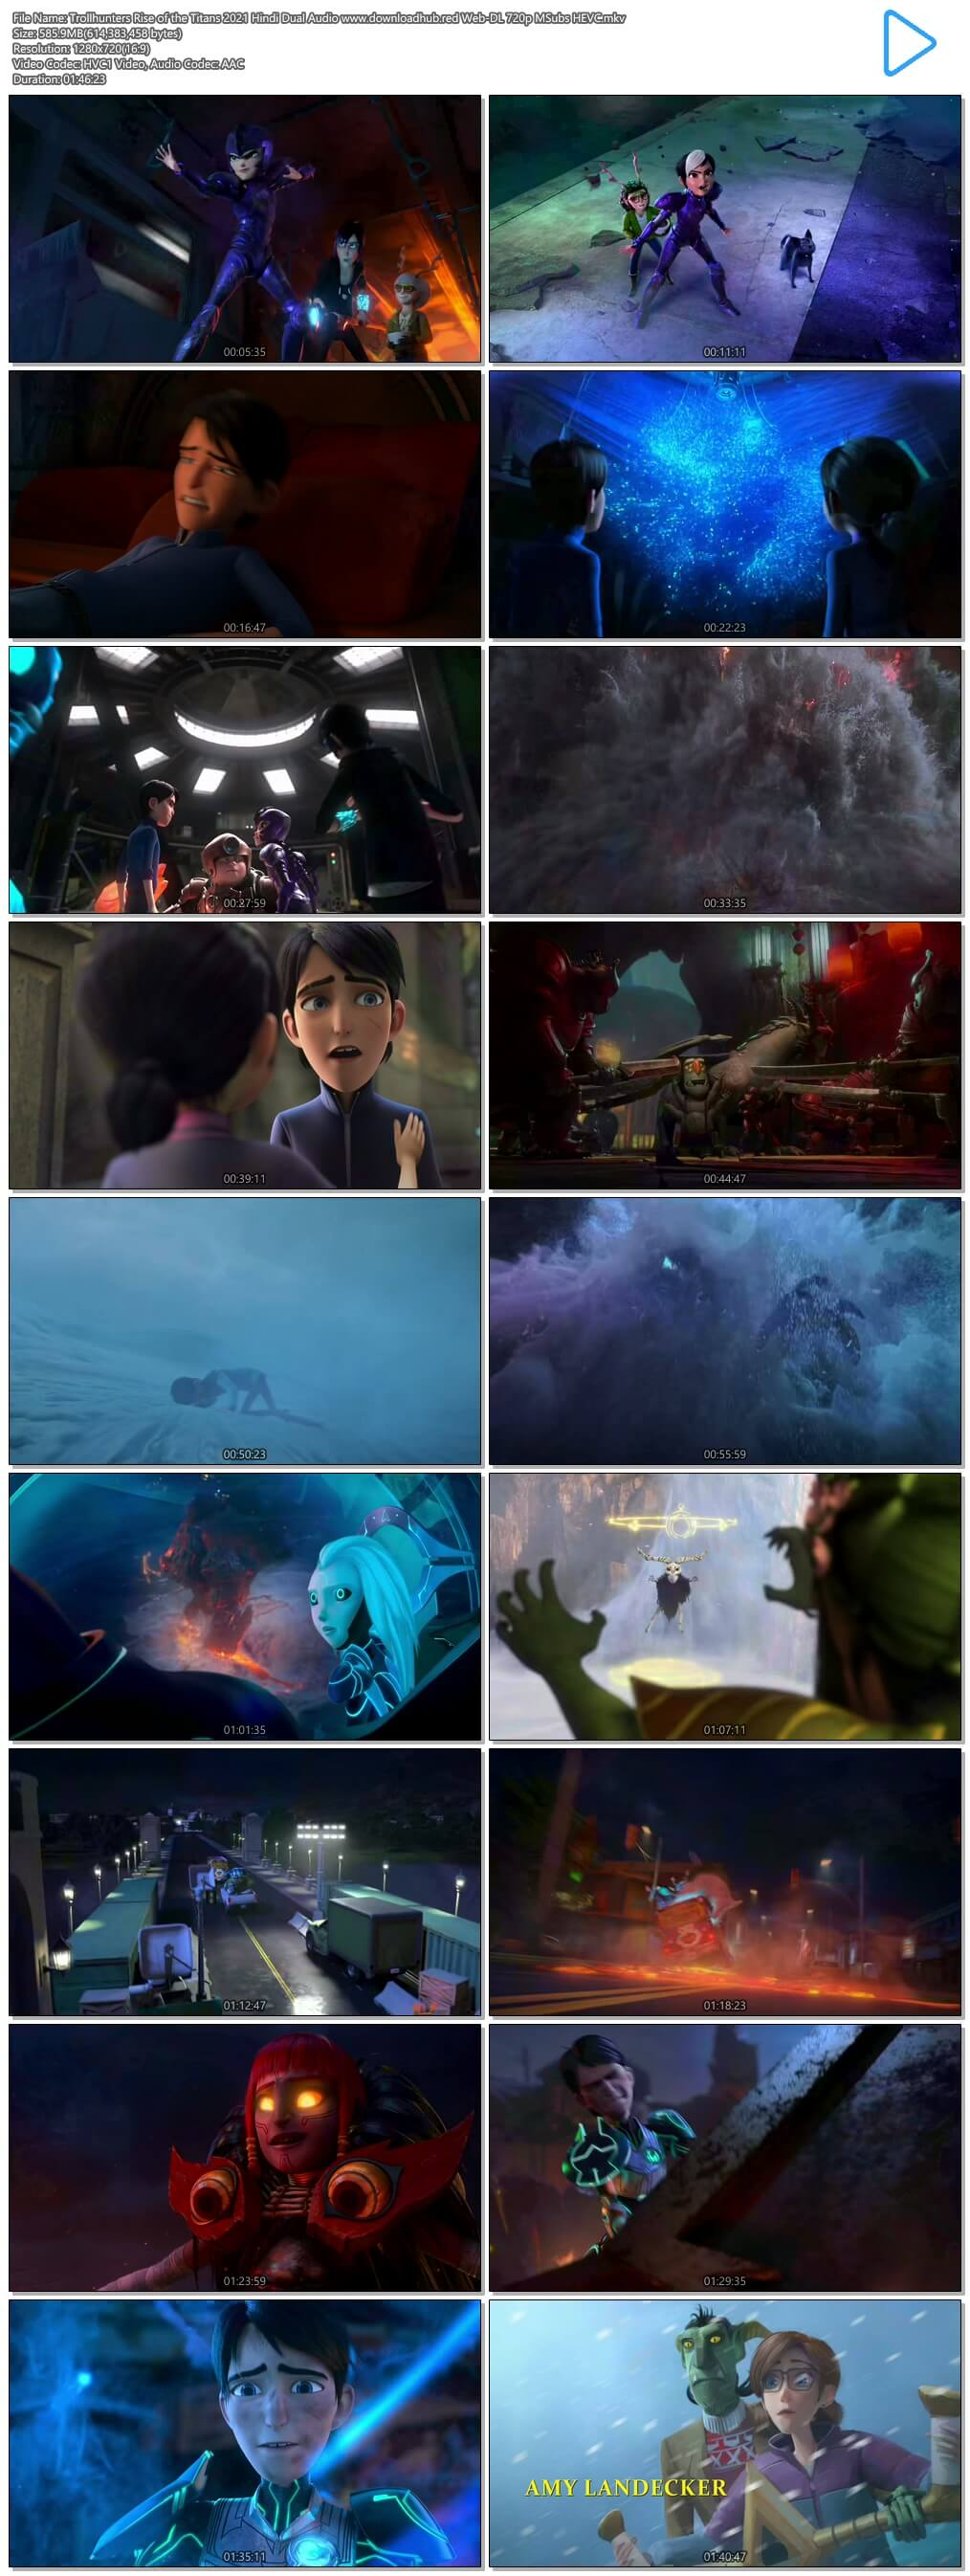 Trollhunters Rise of the Titans 2021 Hindi Dual Audio 550MB Web-DL 720p MSubs HEVC